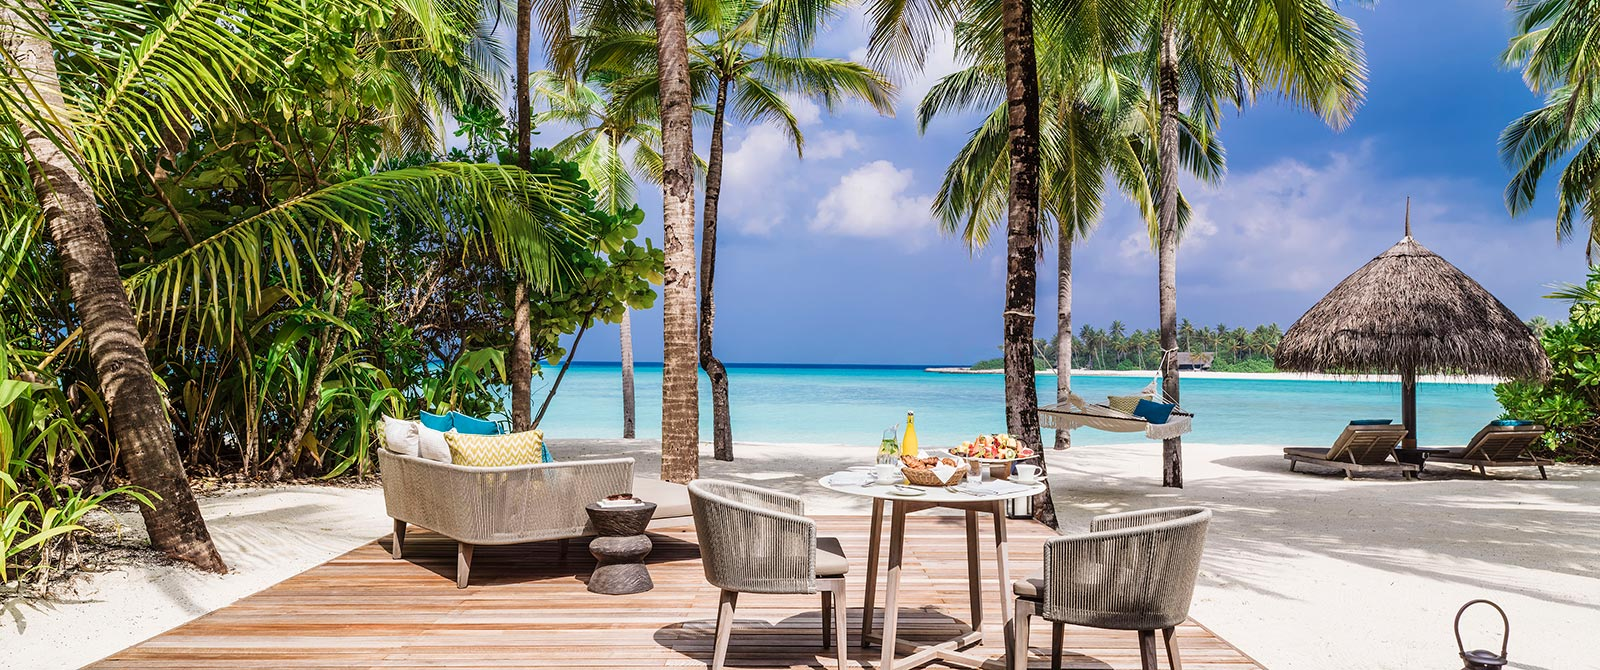 One&Only Reethi Rah Resort Maldives - Beach Villa Outdoor Living Spaces